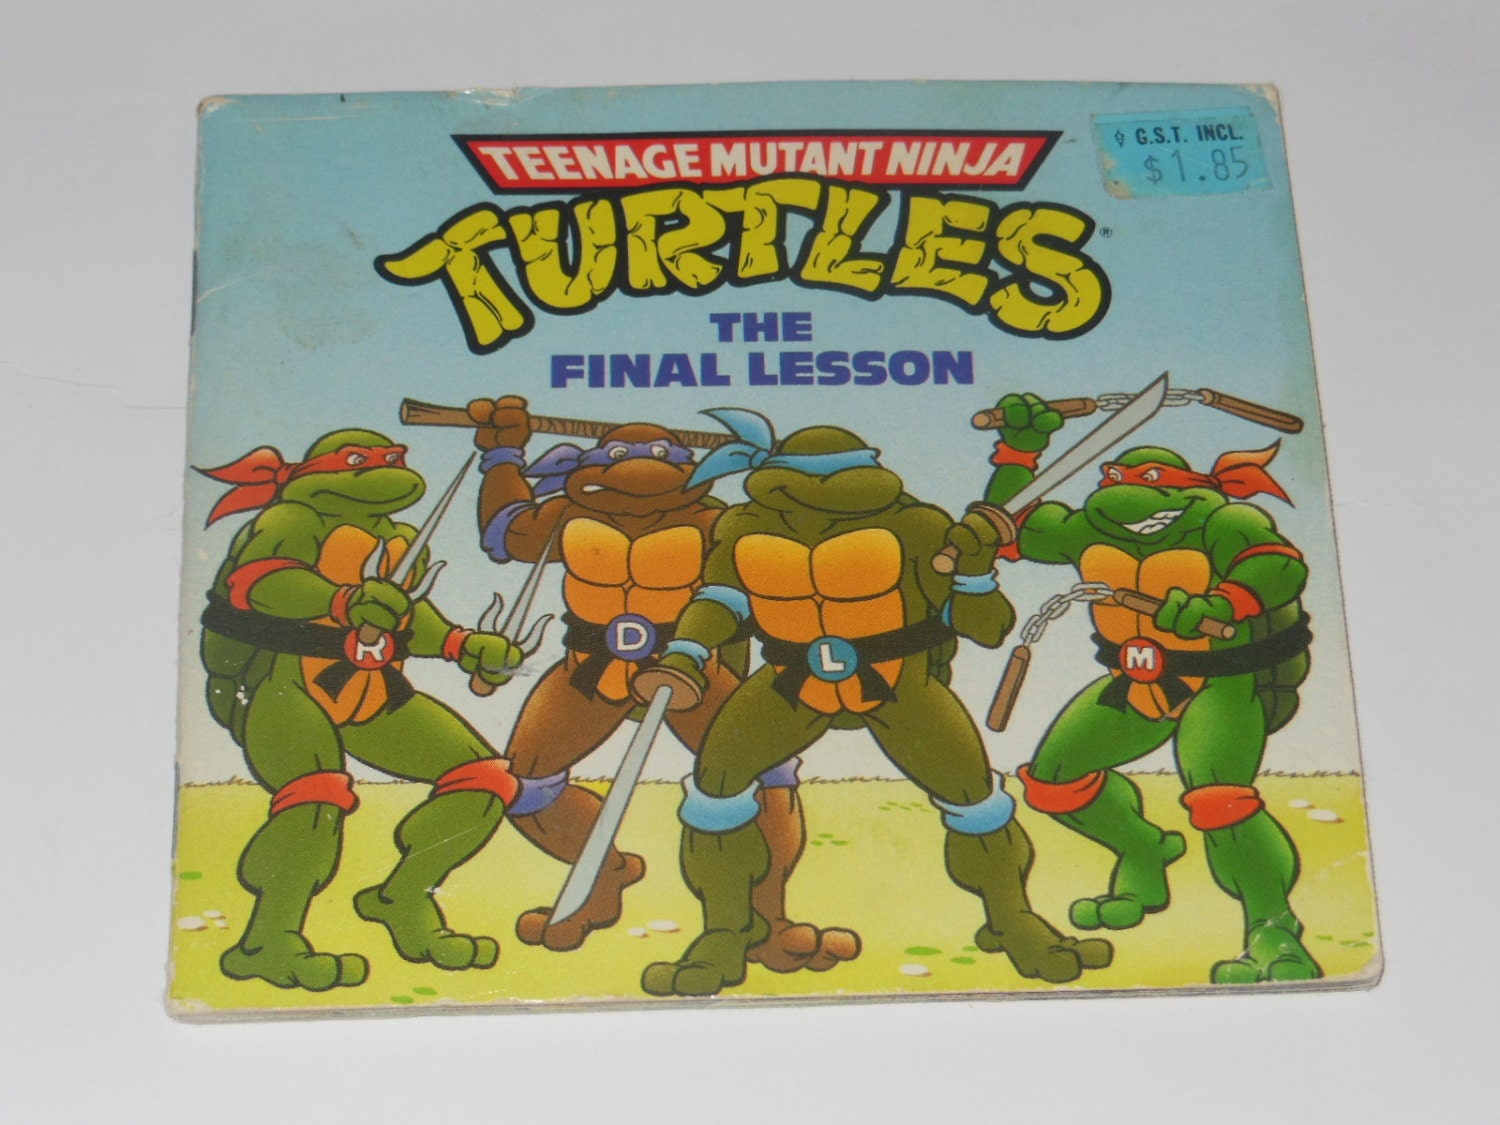 Teenage Mutant Ninja Turtles die letzte Lektion Vintage